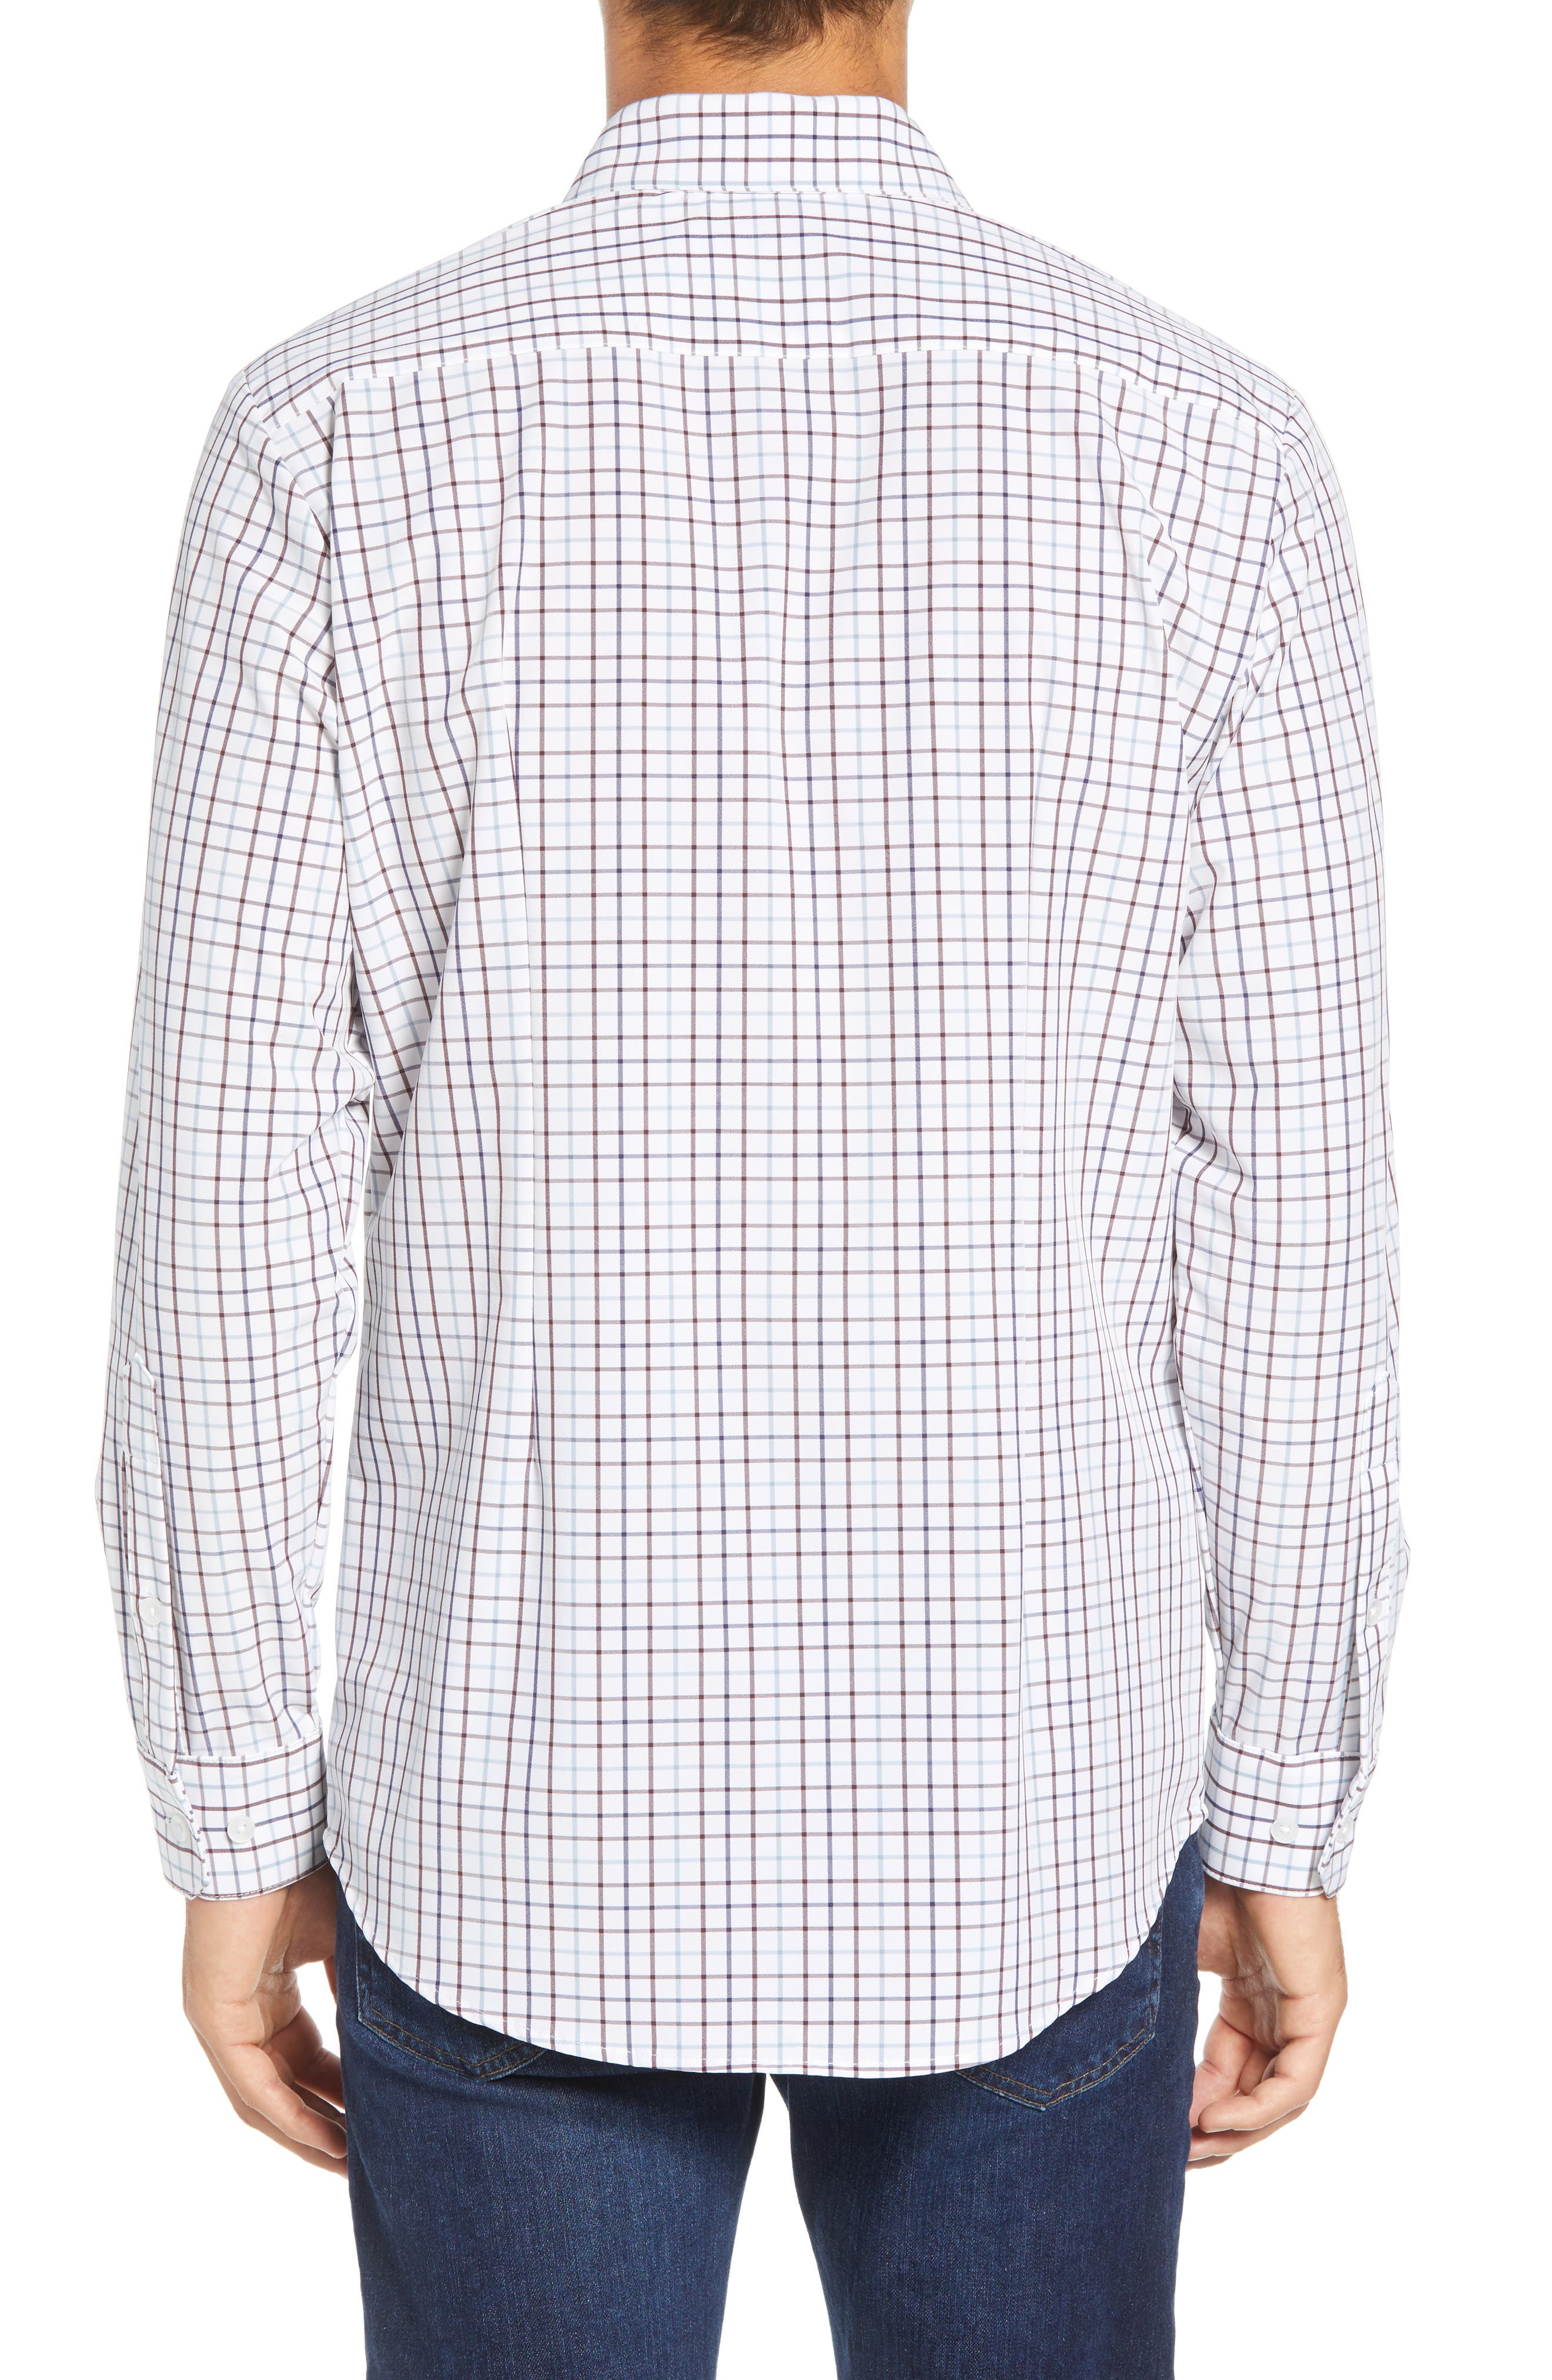 Ward Regular Fit Multi Check Performance Sport Shirt,                             Alternate thumbnail 3, color,                             WHITE